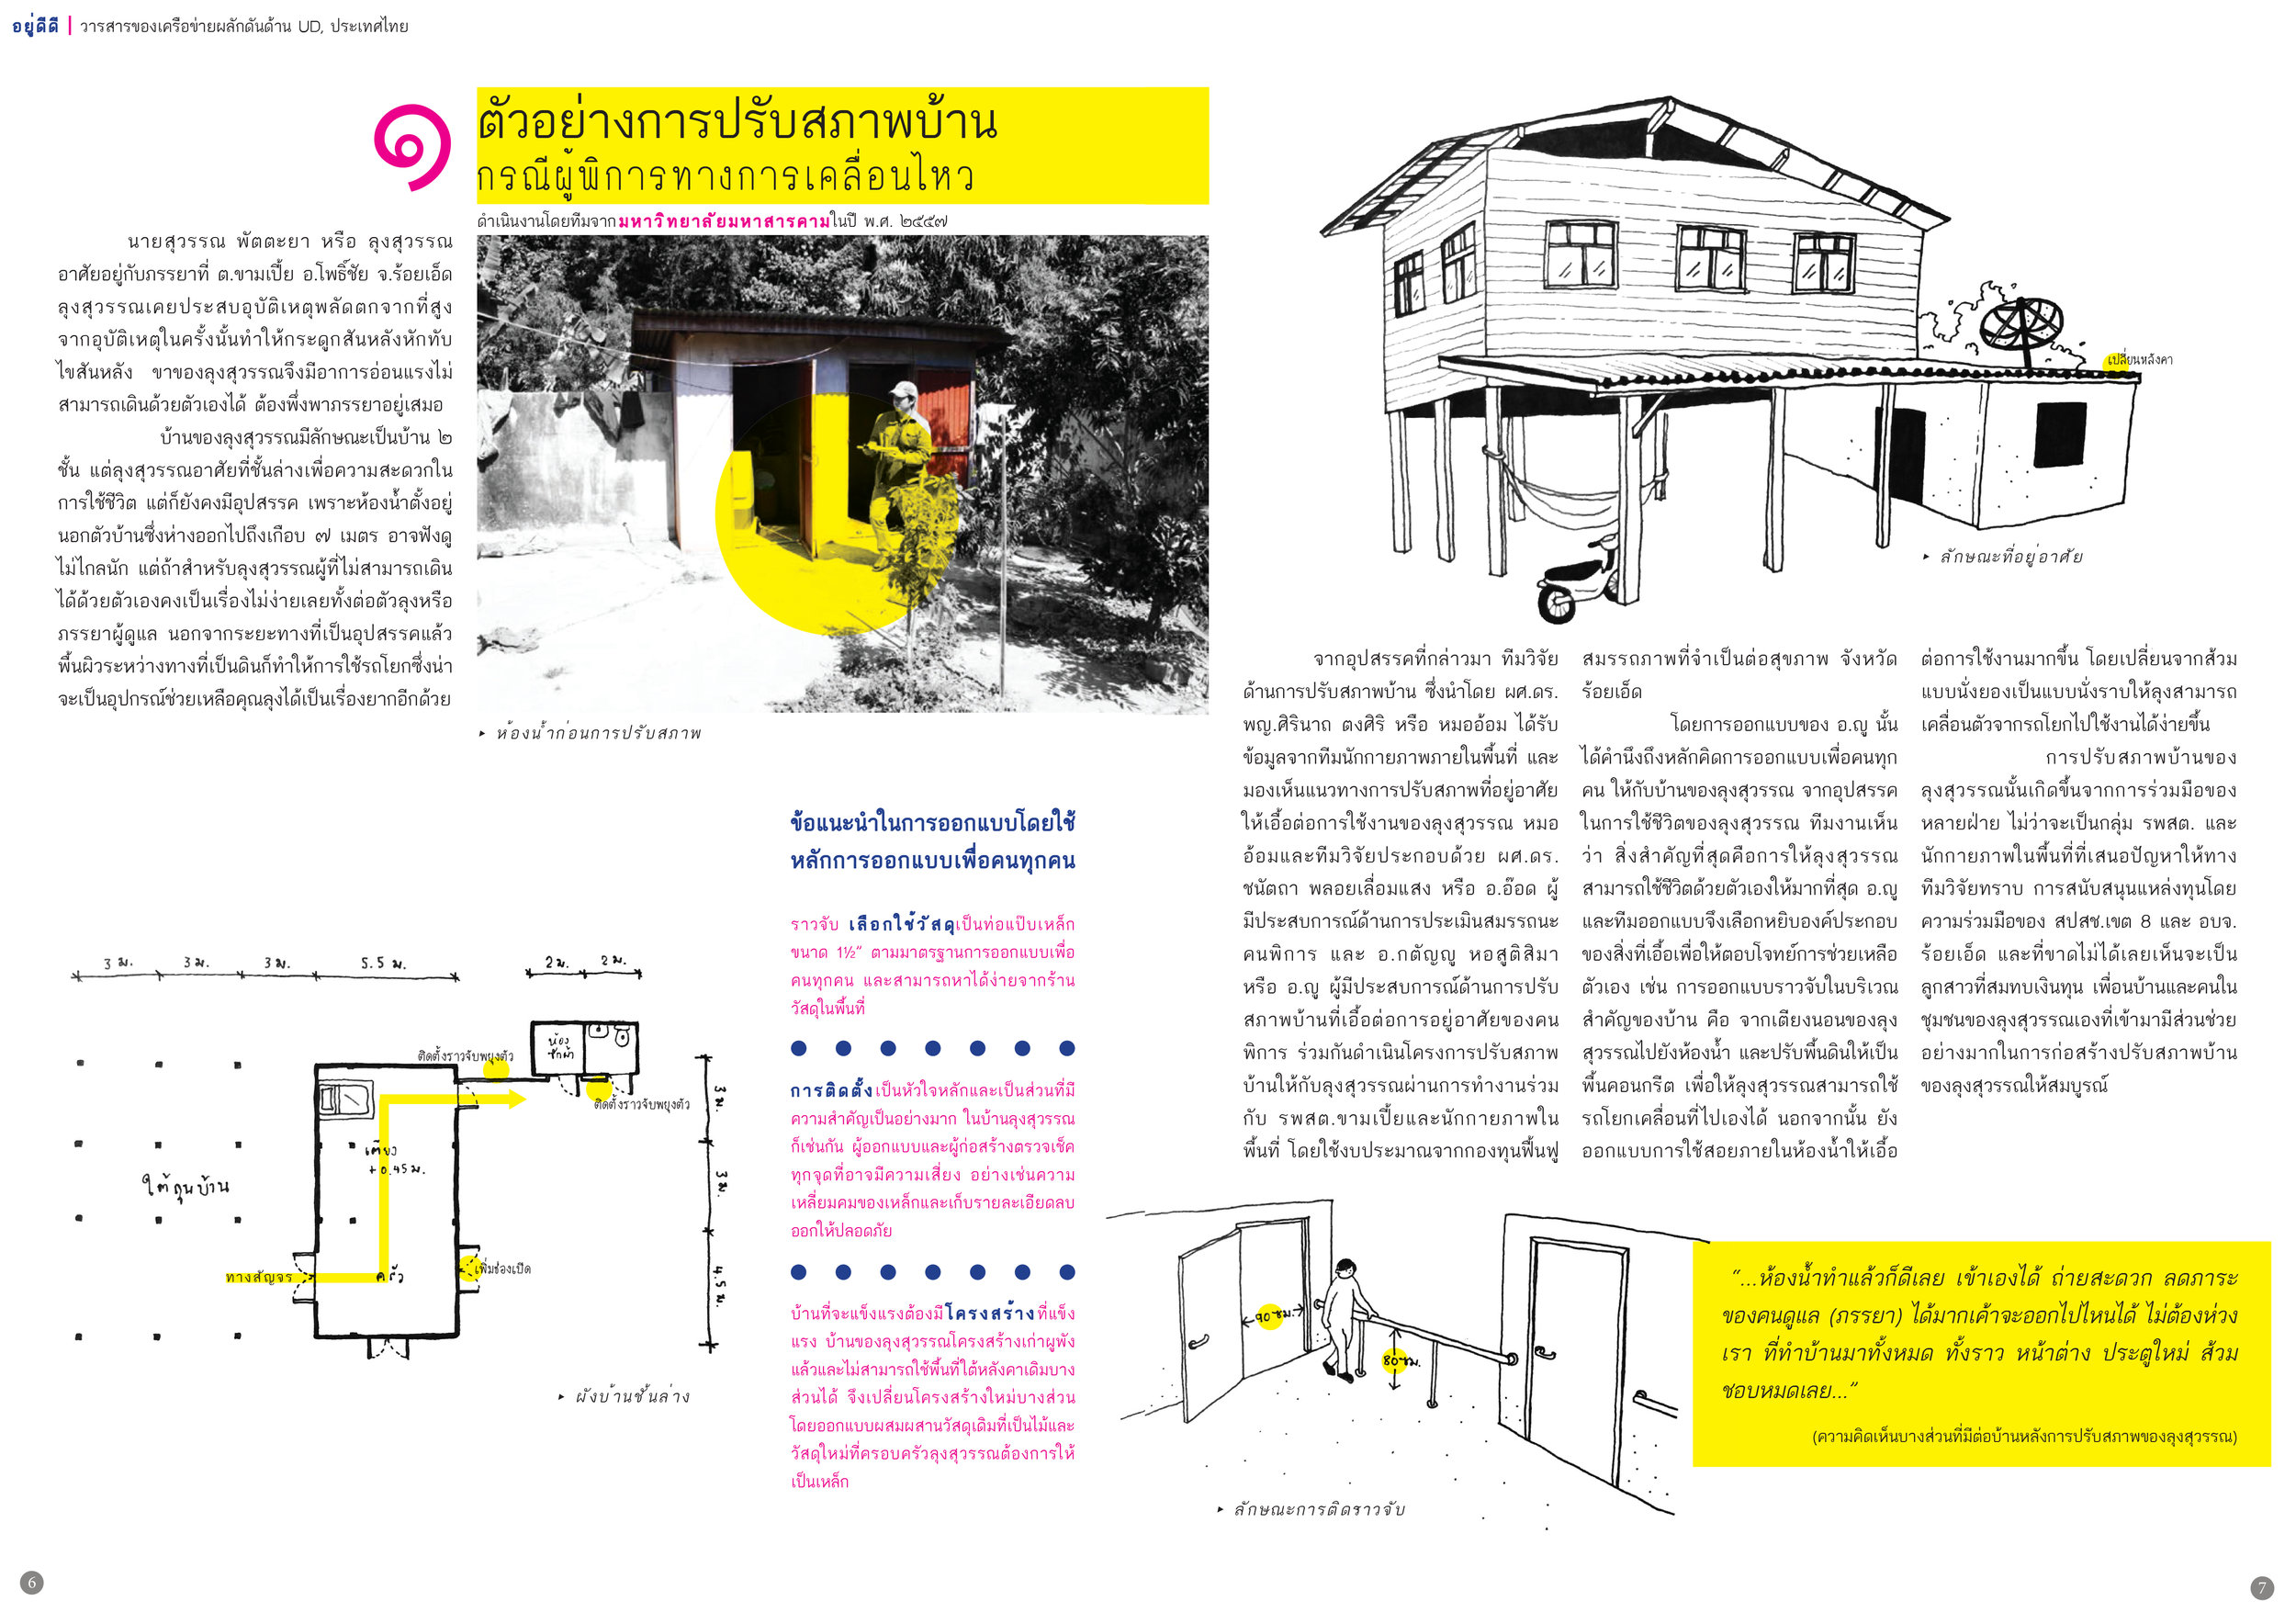 UDD Journal:  Gathering experiences from universal design practitioners across Thailand